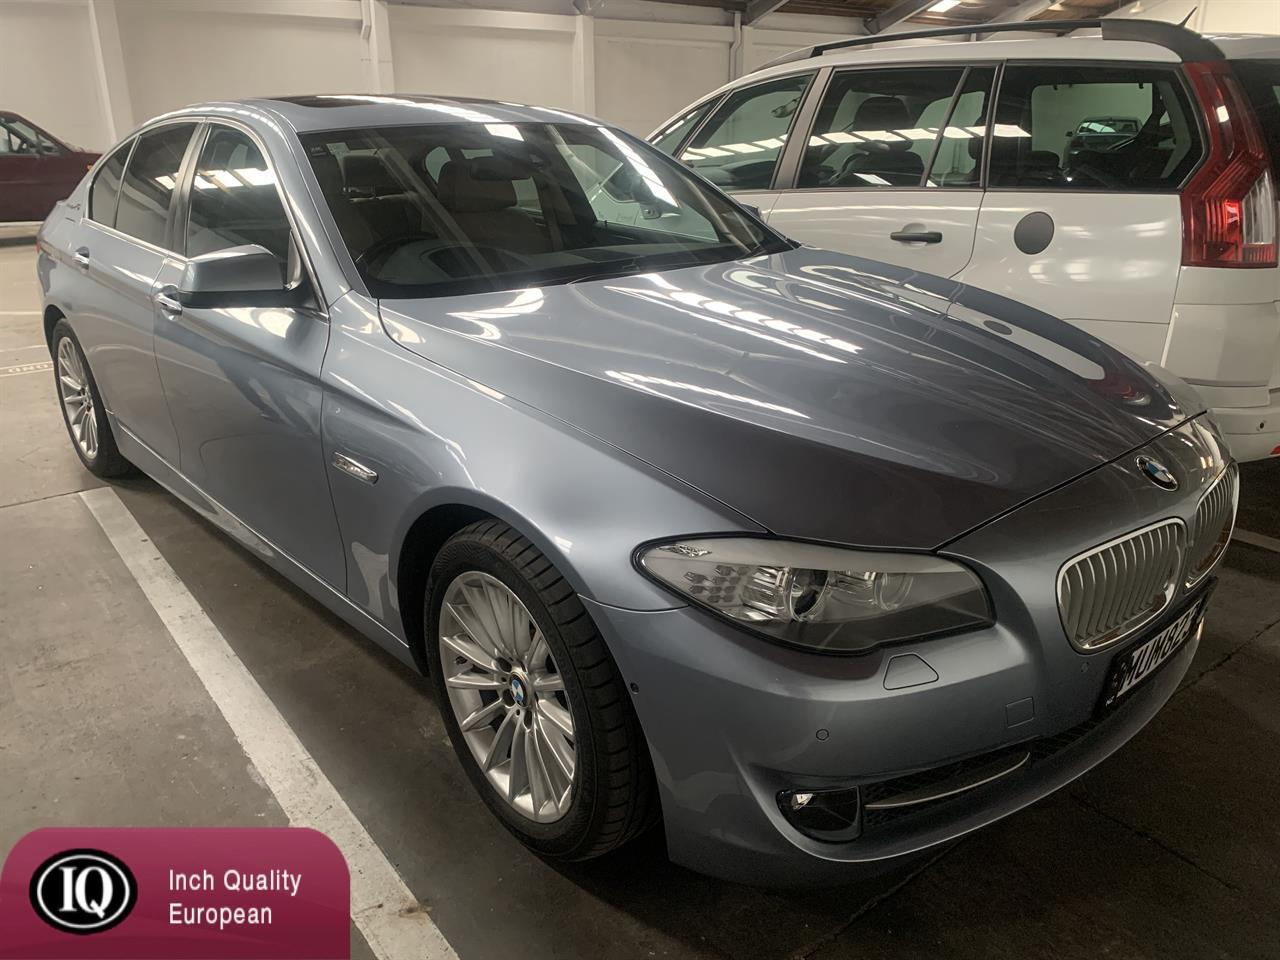 image-0, 2012 BMW Activehybrid 5 at Christchurch